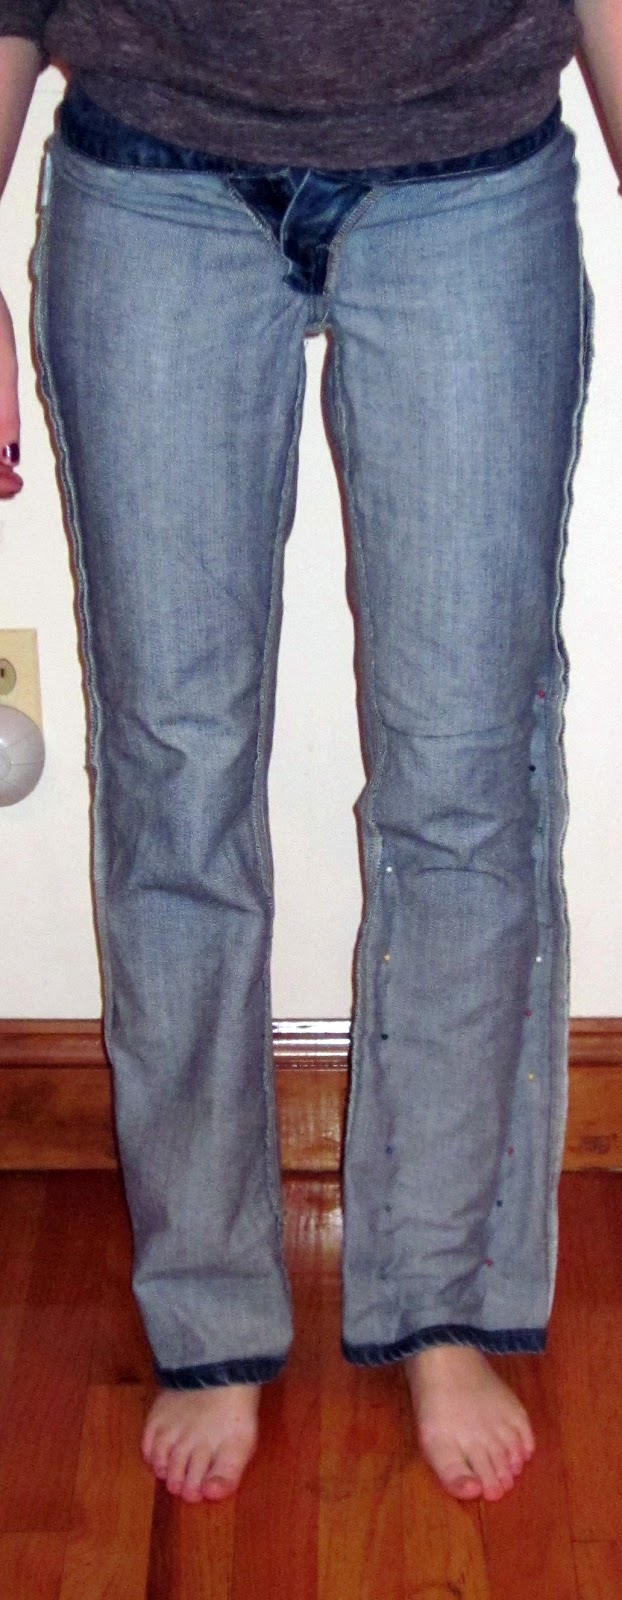 The Crafty Novice DIY Jeans Refashion Flares to Straight Leg